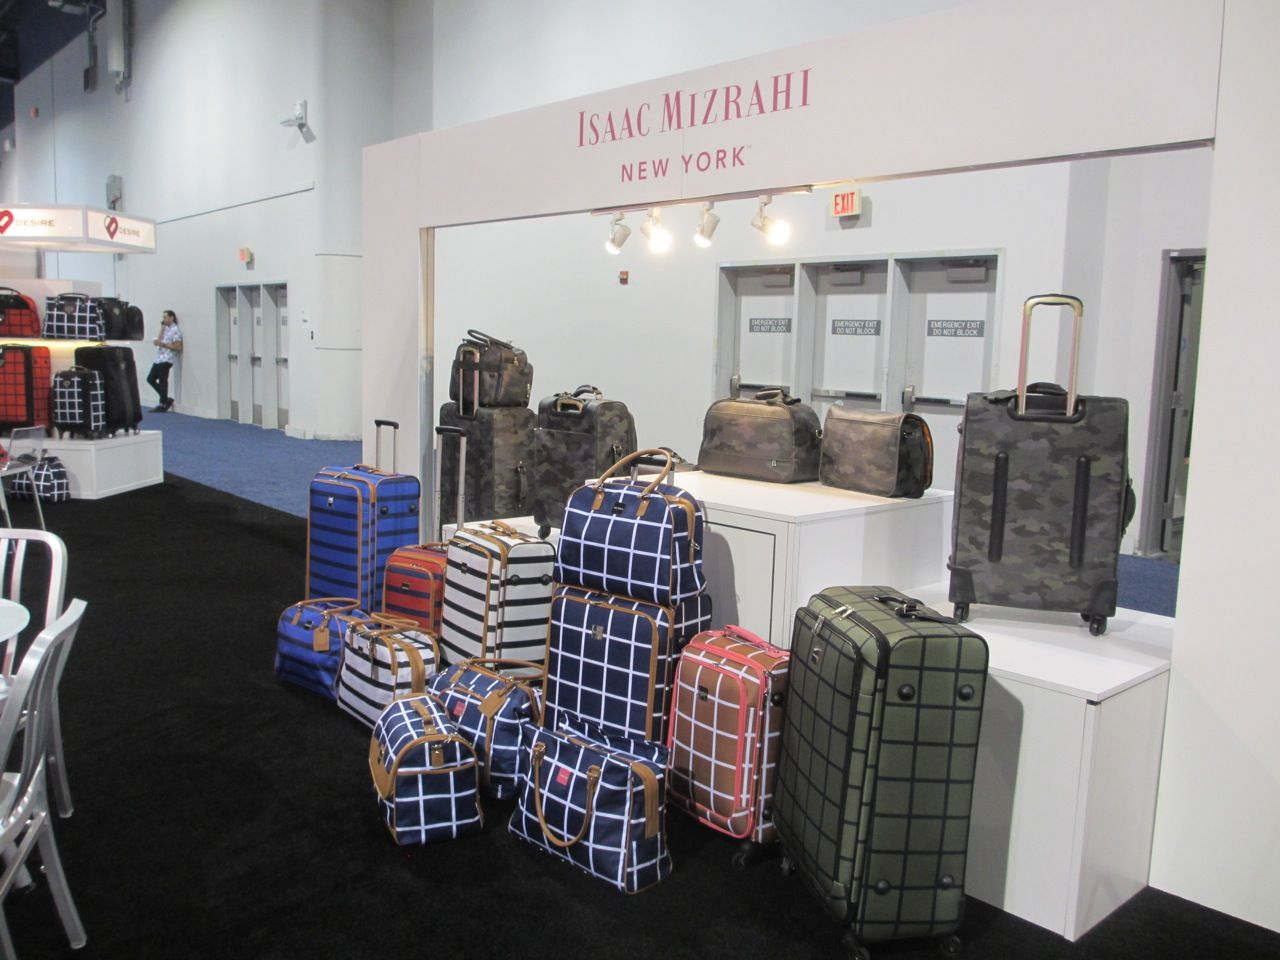 Fine Isaac Mizrahi New York Signal Brands Luggage And Suitcases Home Interior And Landscaping Ologienasavecom